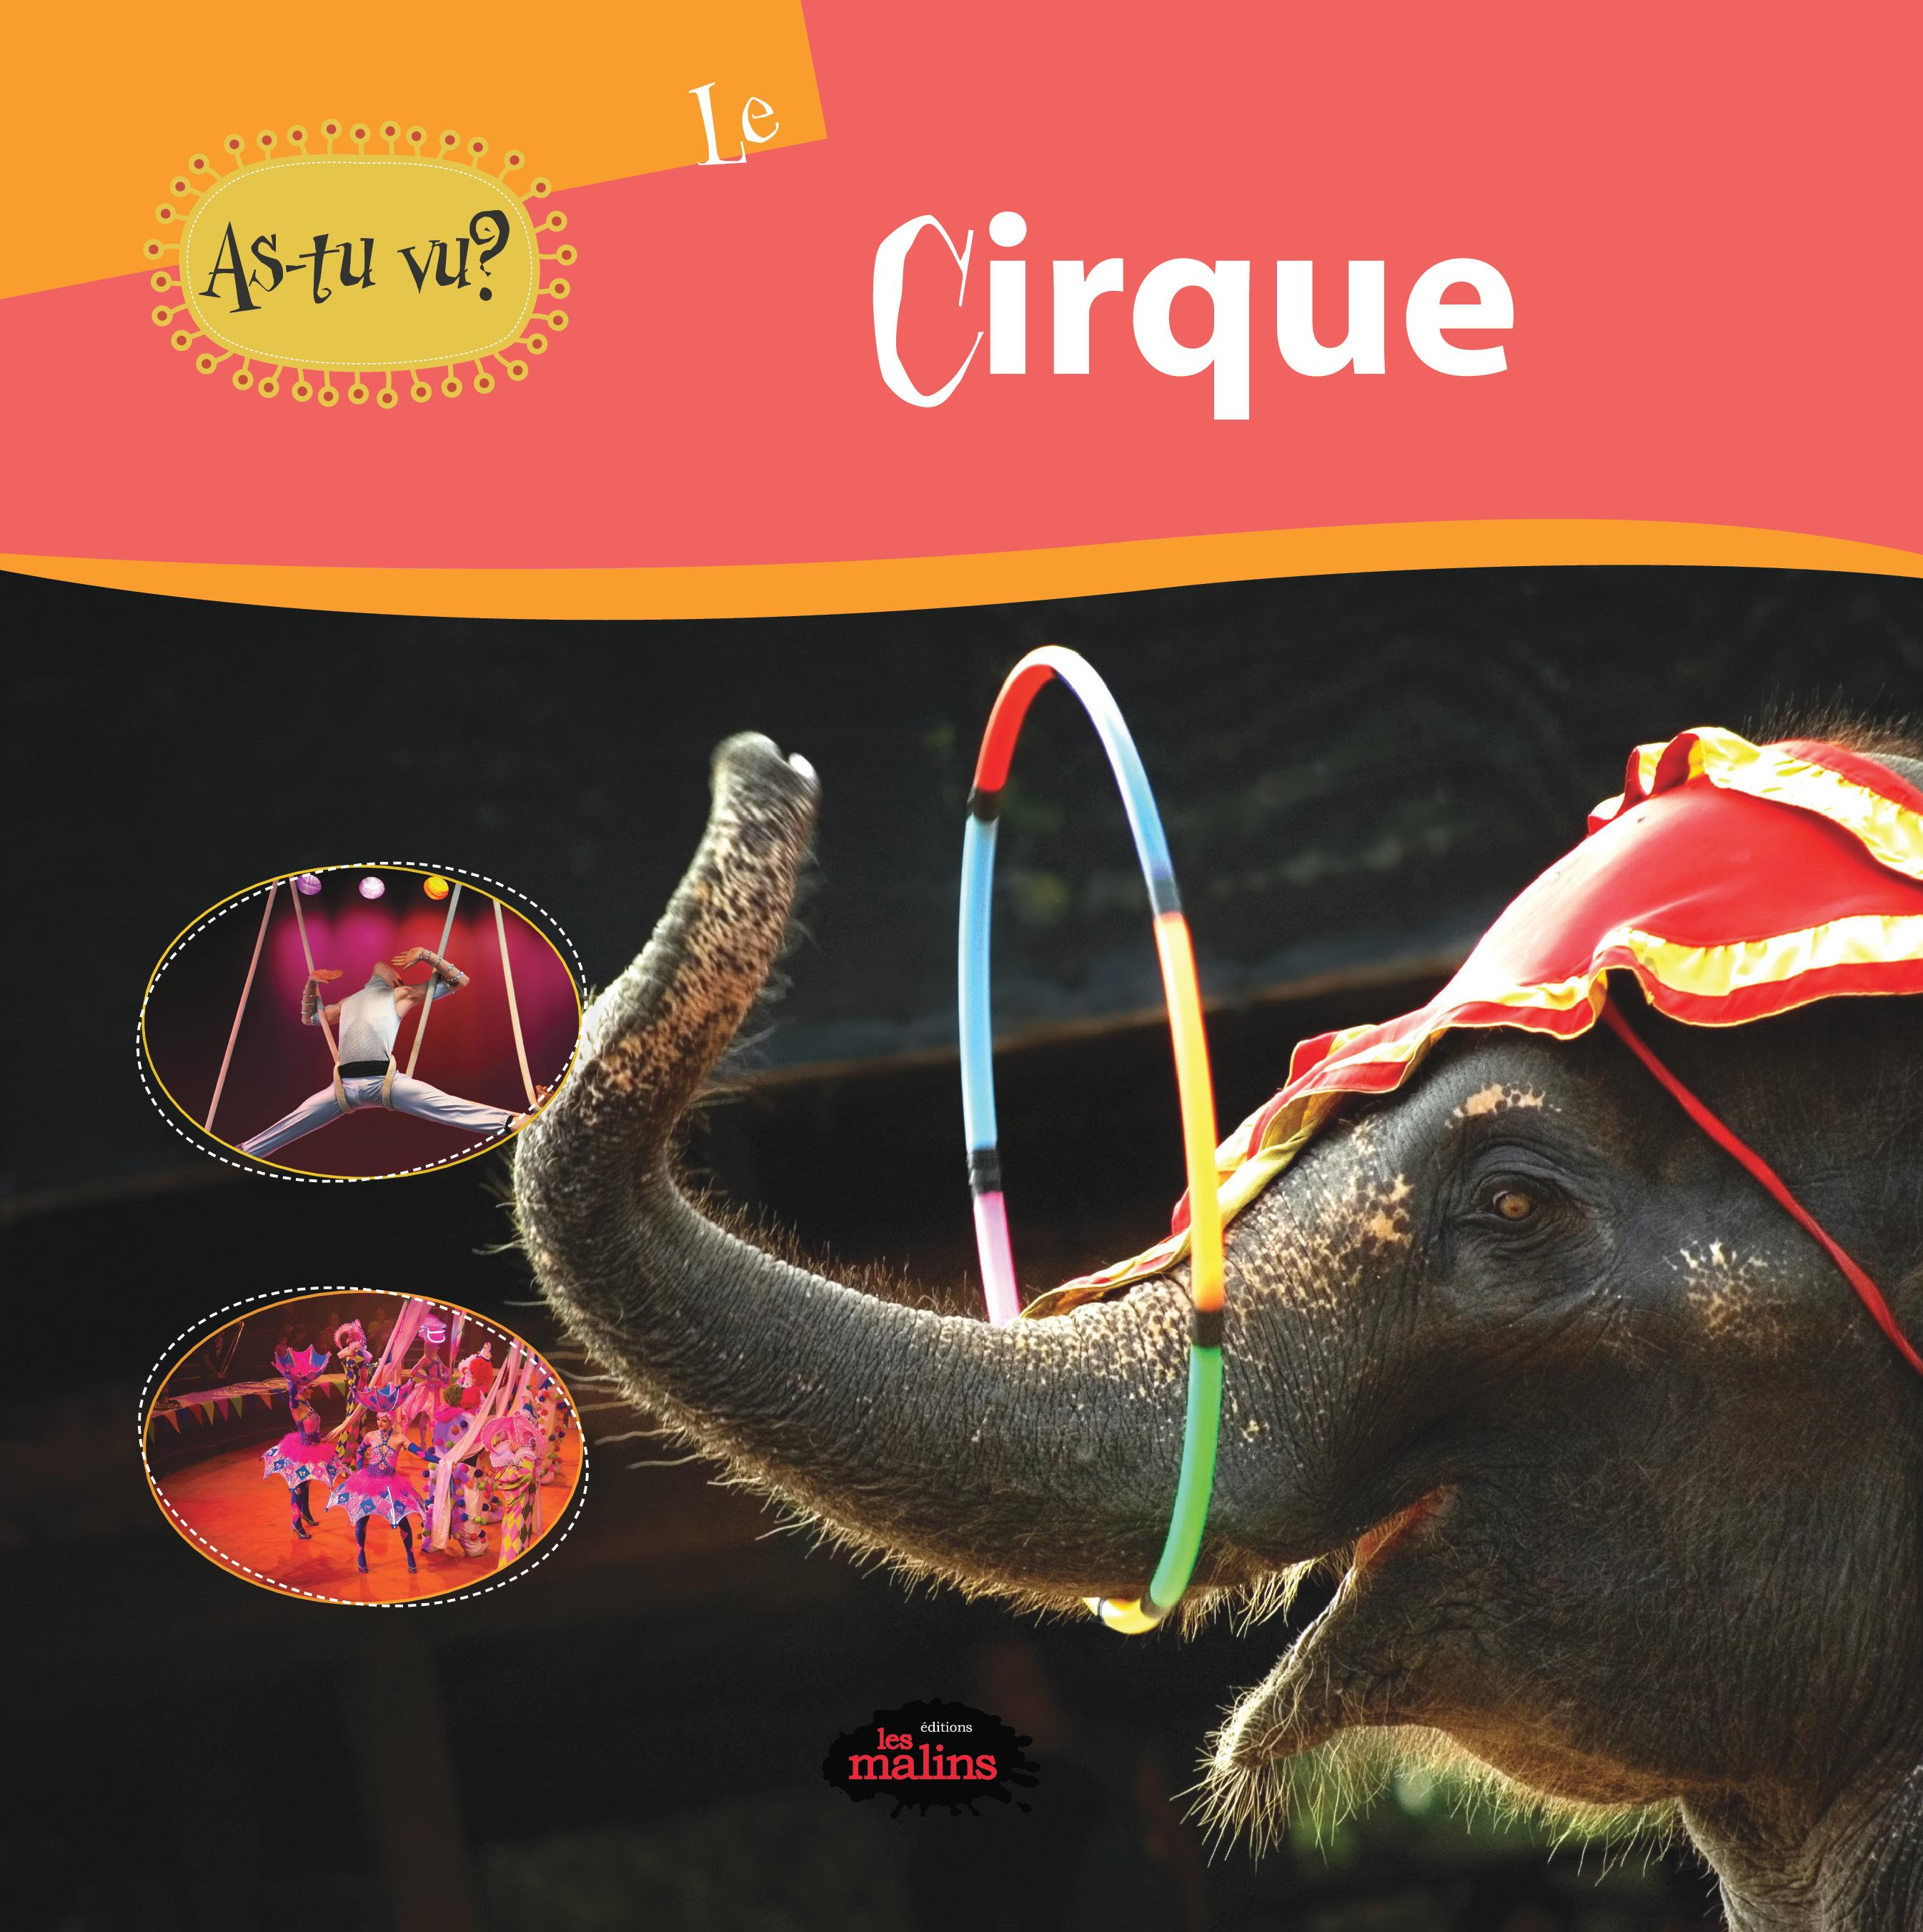 As-tu vu? Le cirque